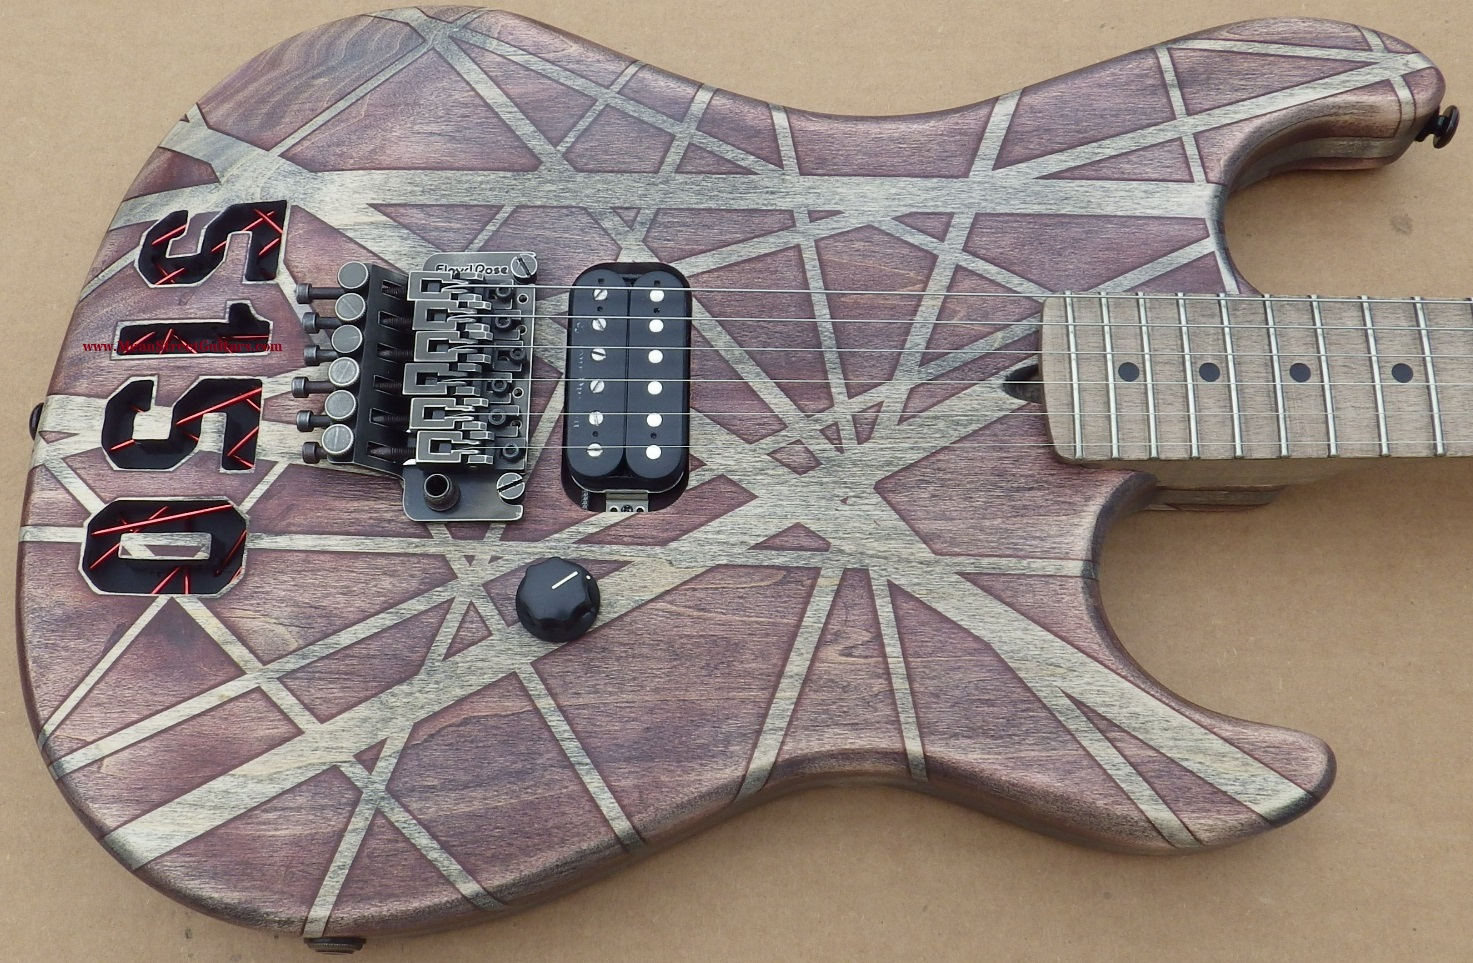 Mean Street Guitars Industrial 50 1 50 Pipeline 01 maroon pic 3.jpg